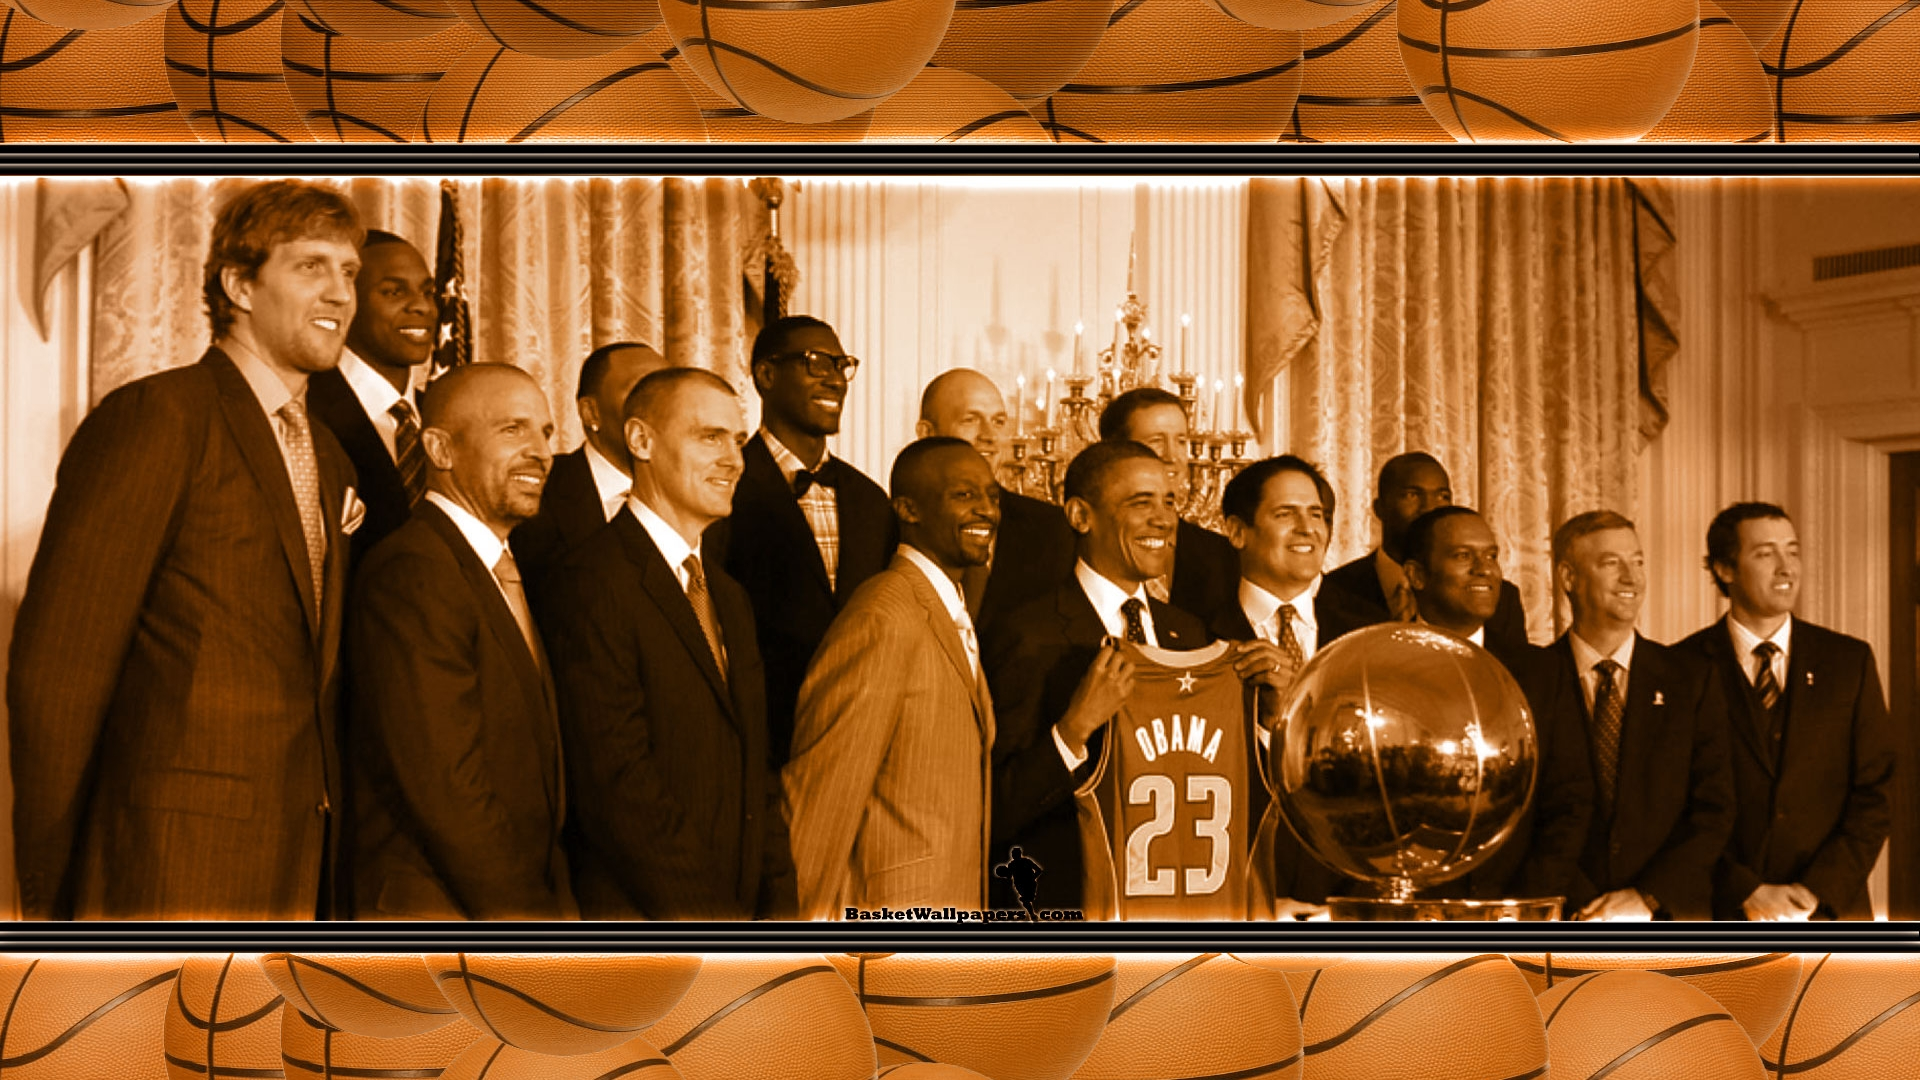 Obama basketball wallpaper